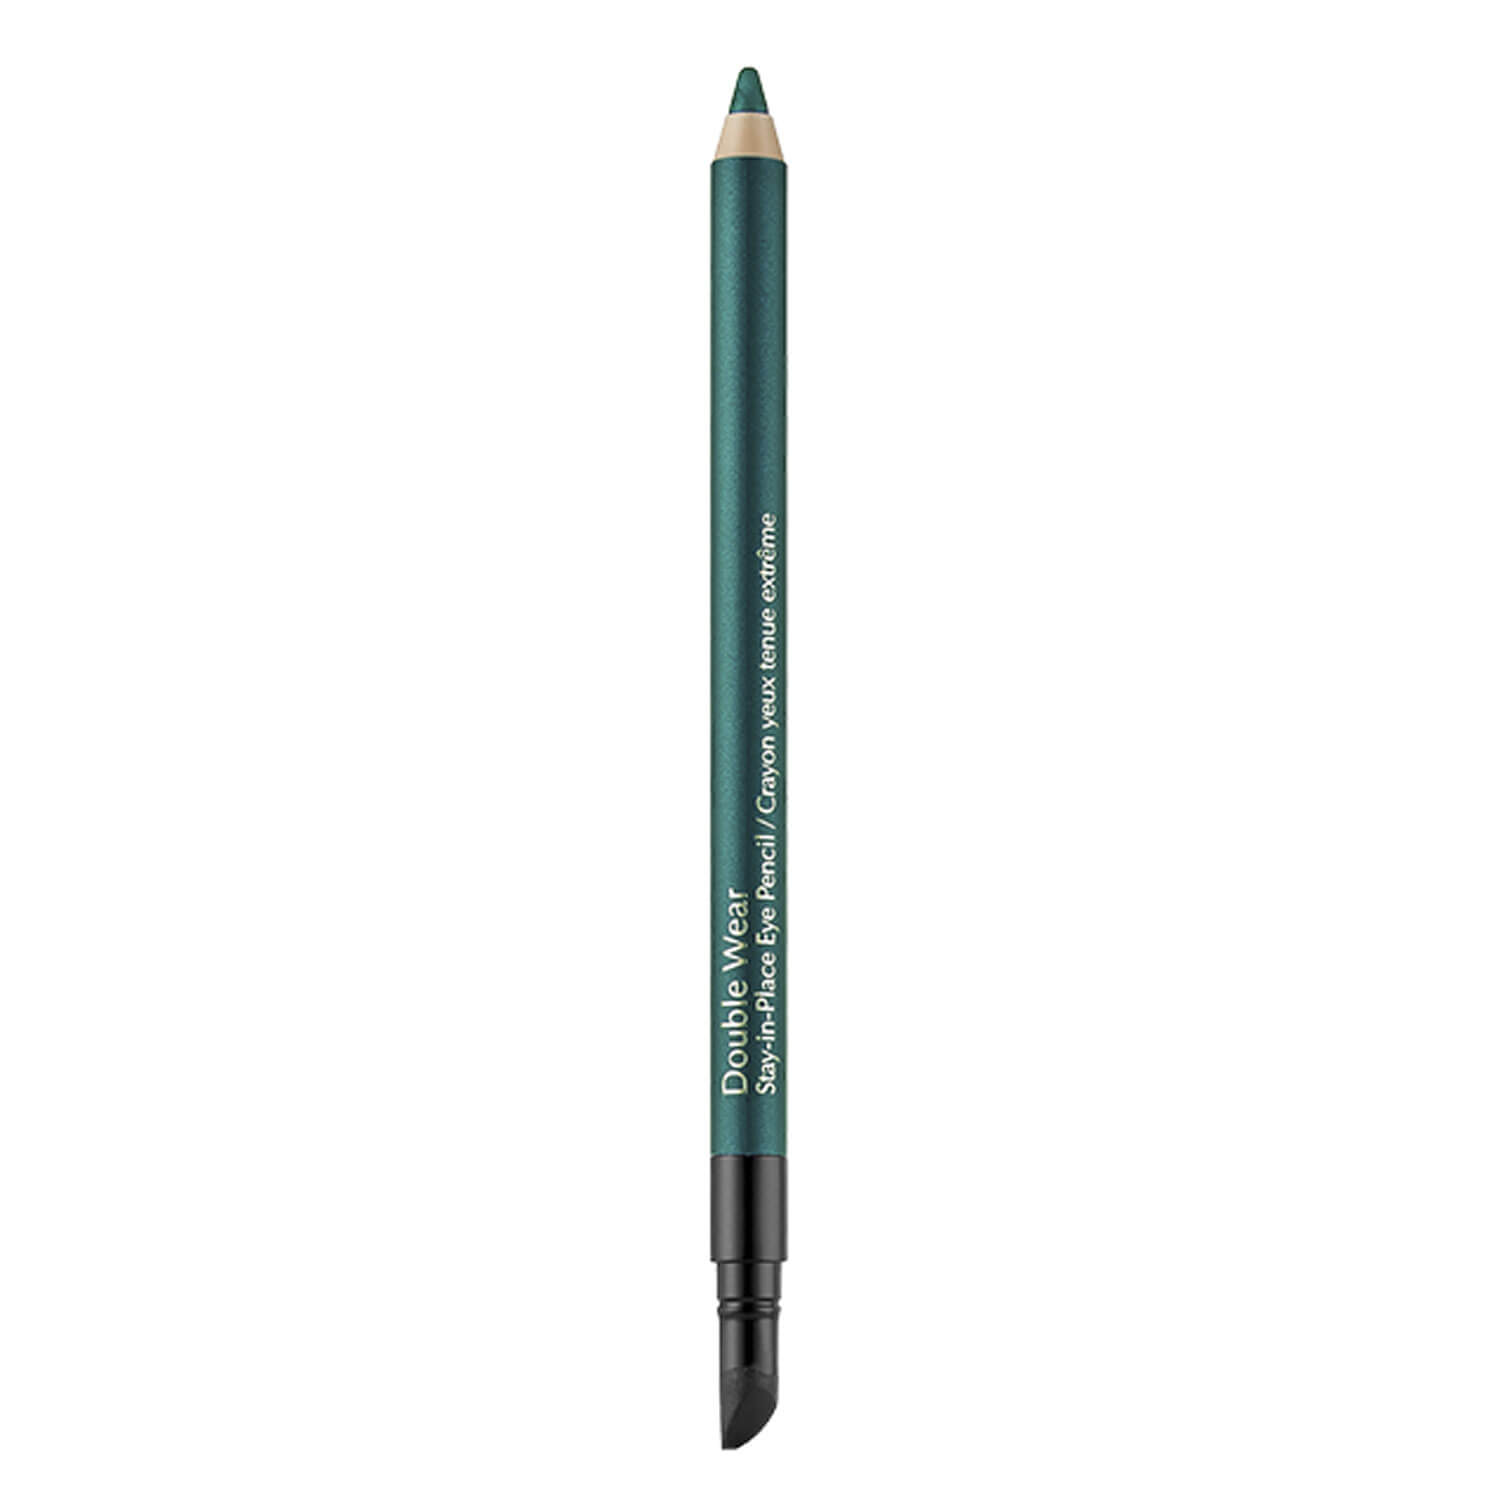 Double Wear - Stay-in-Place Eye Pencil Emerald Volt